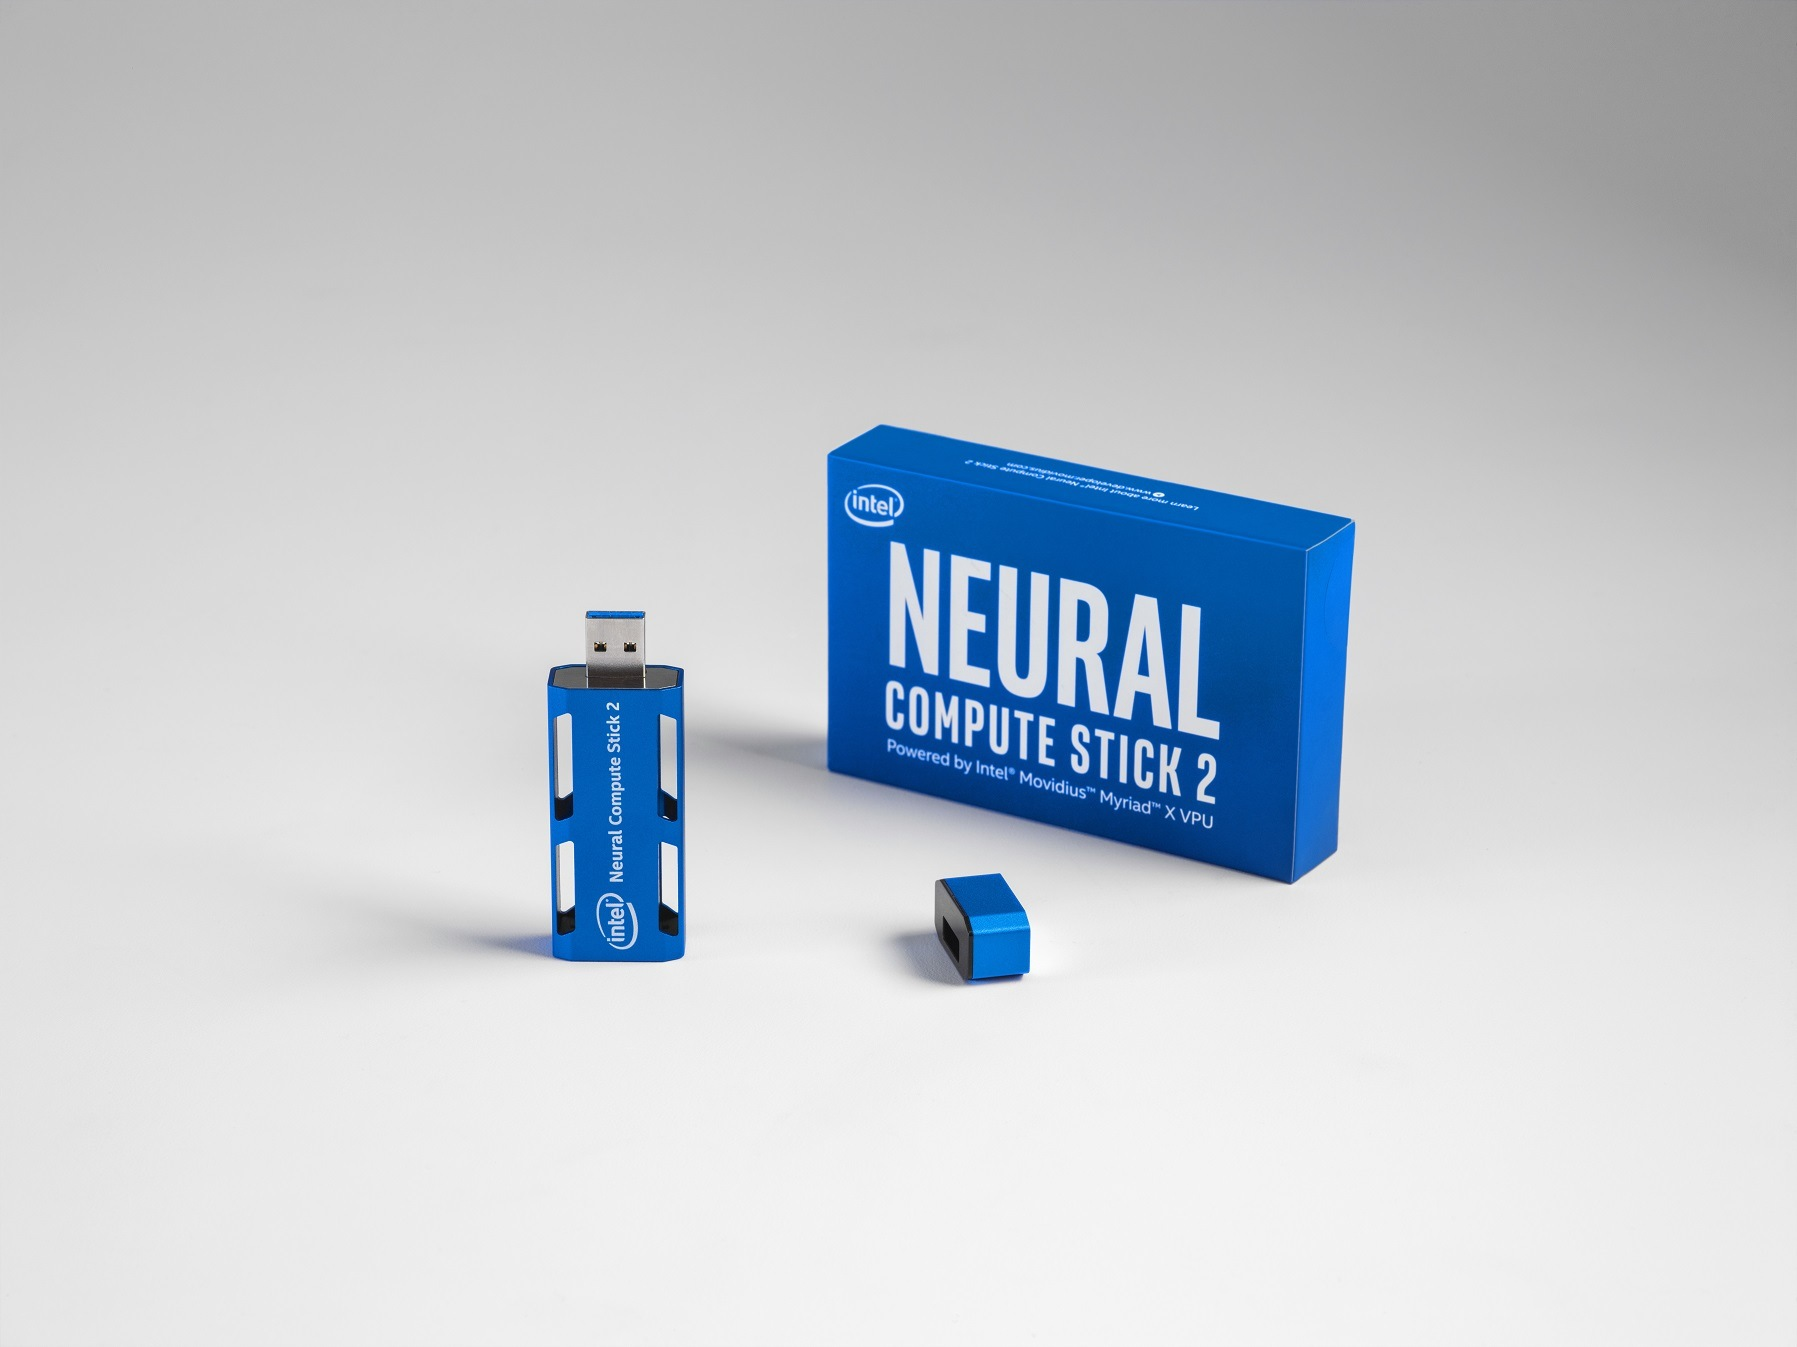 Intel-Neural-Compute-Stick-2-4